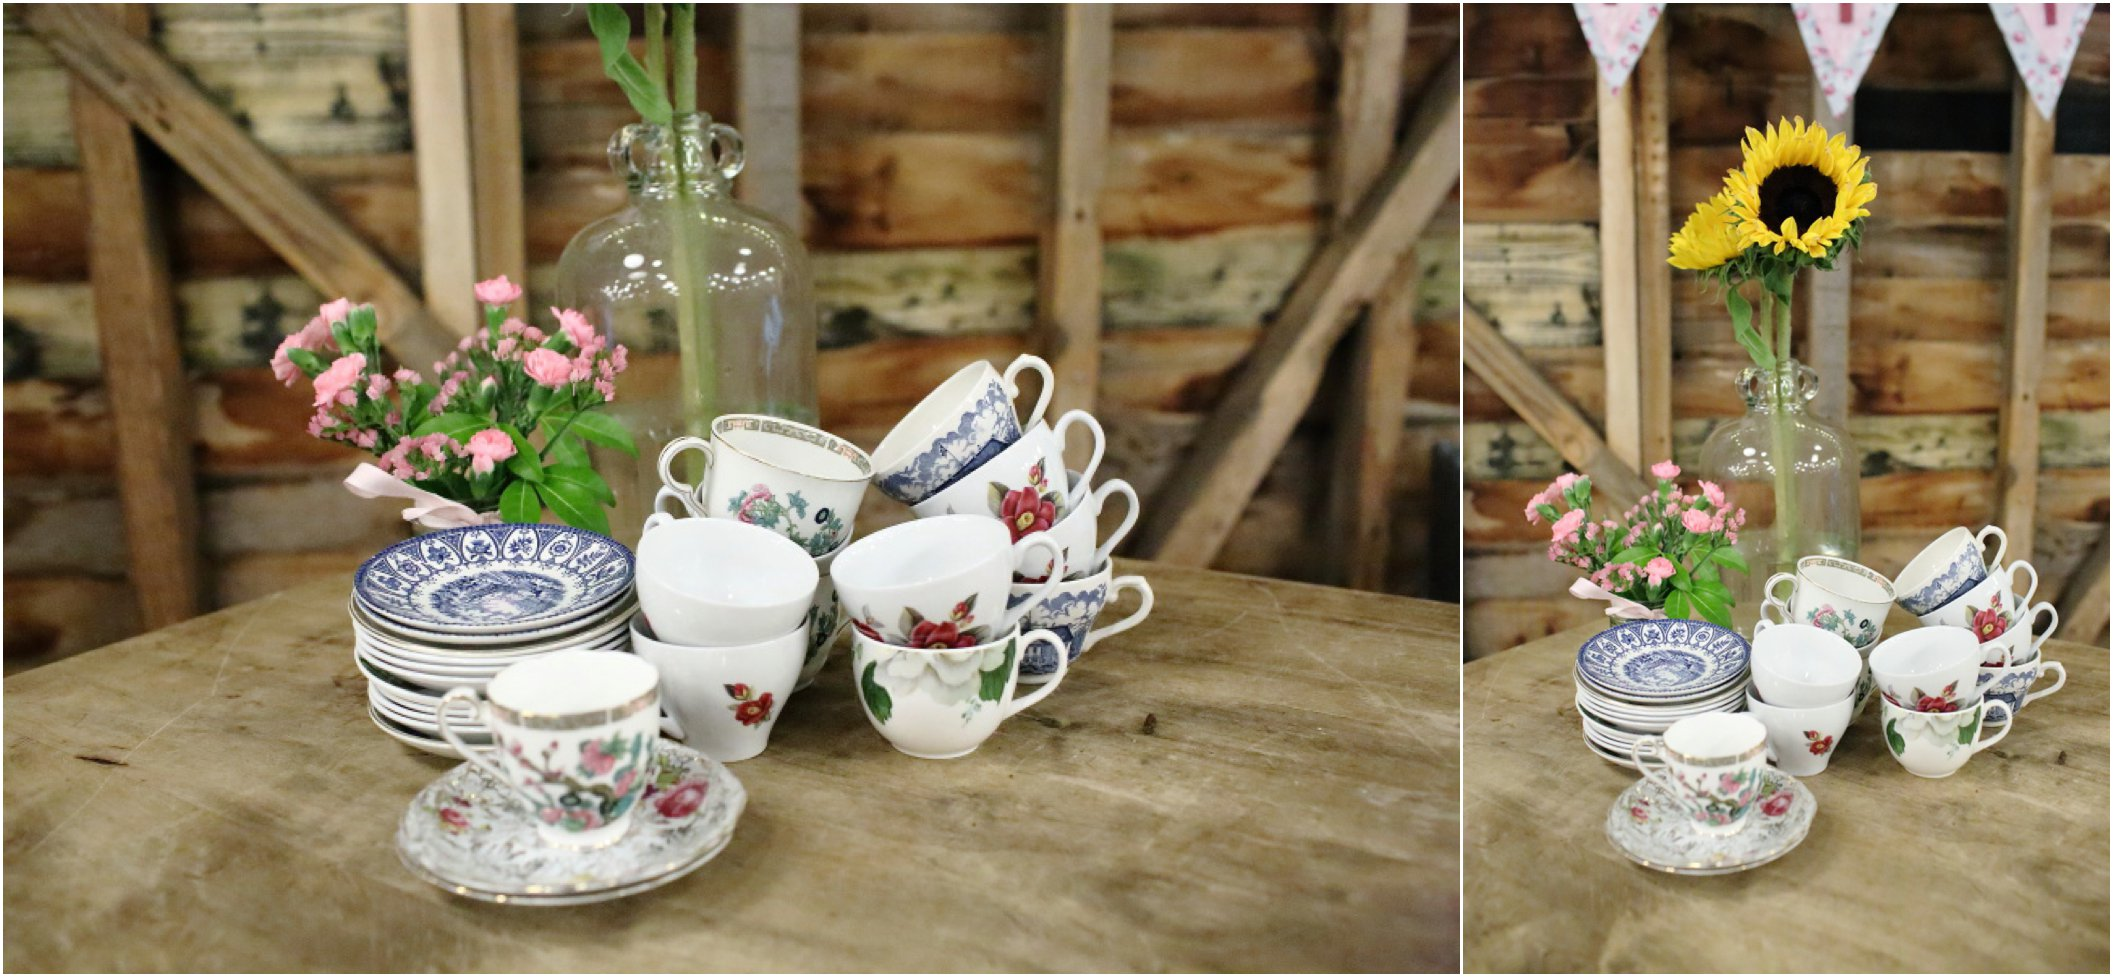 vintage, rustic afternoon tea at Childerley in Cambridge